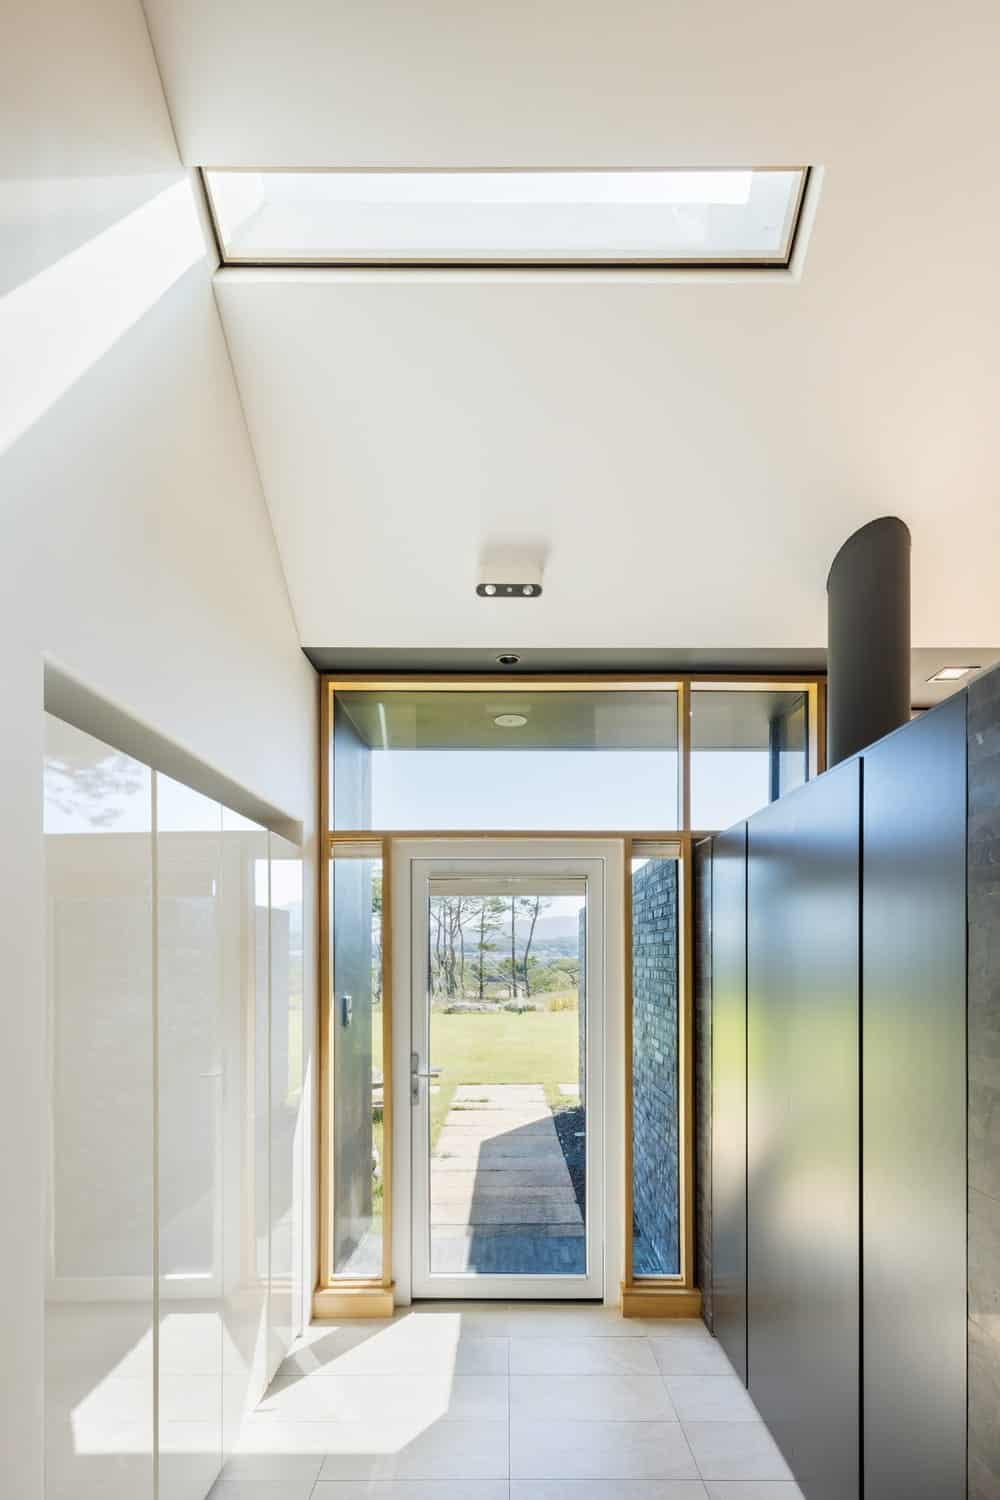 This is a close look at the simple foyer with a glass door, skylight above and contrasting walls on both sides.